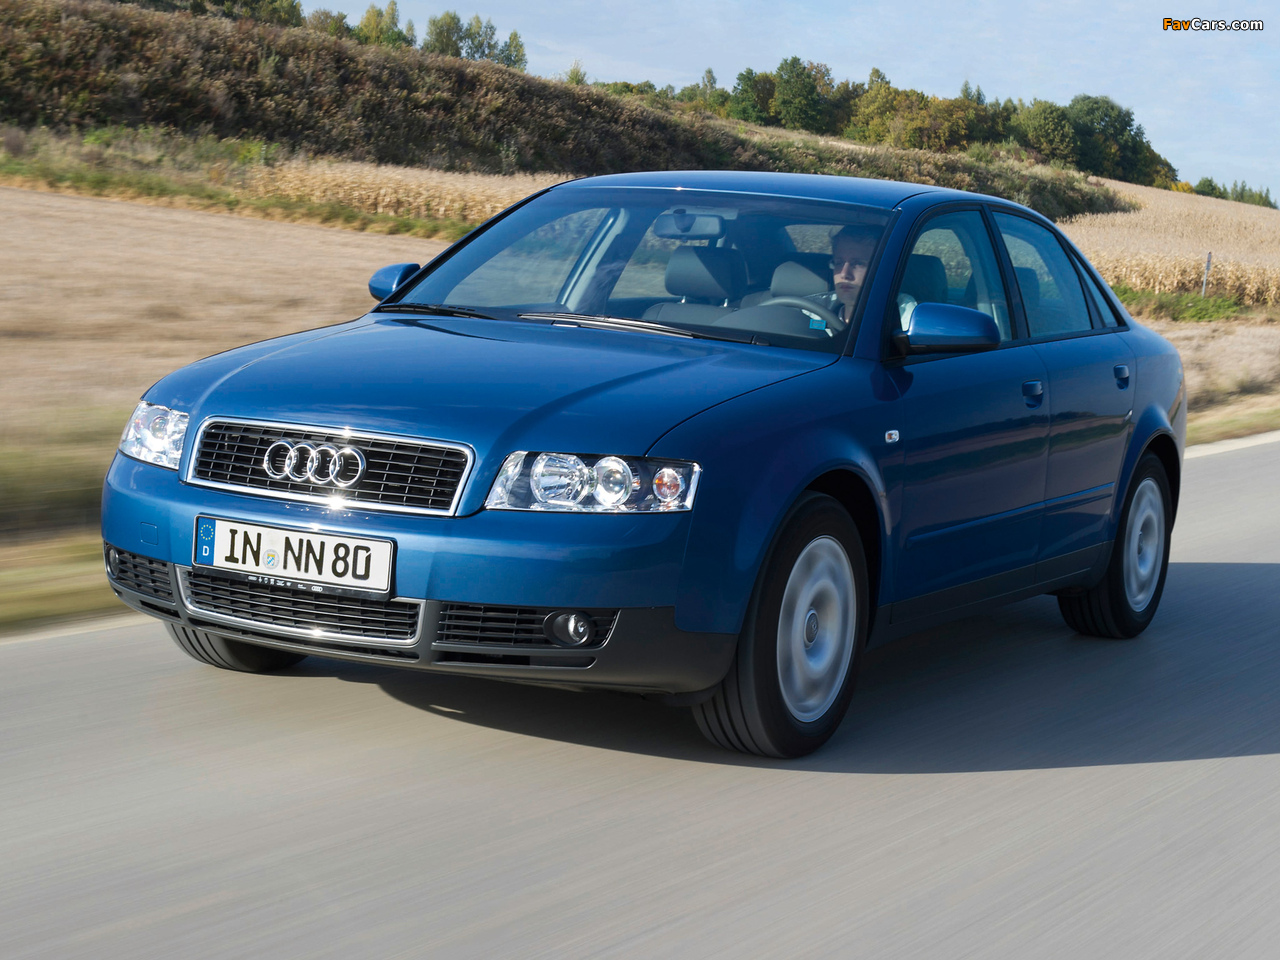 Photos Of Audi A4 1 8t Sedan B6 8e 2000 2004 1280x960